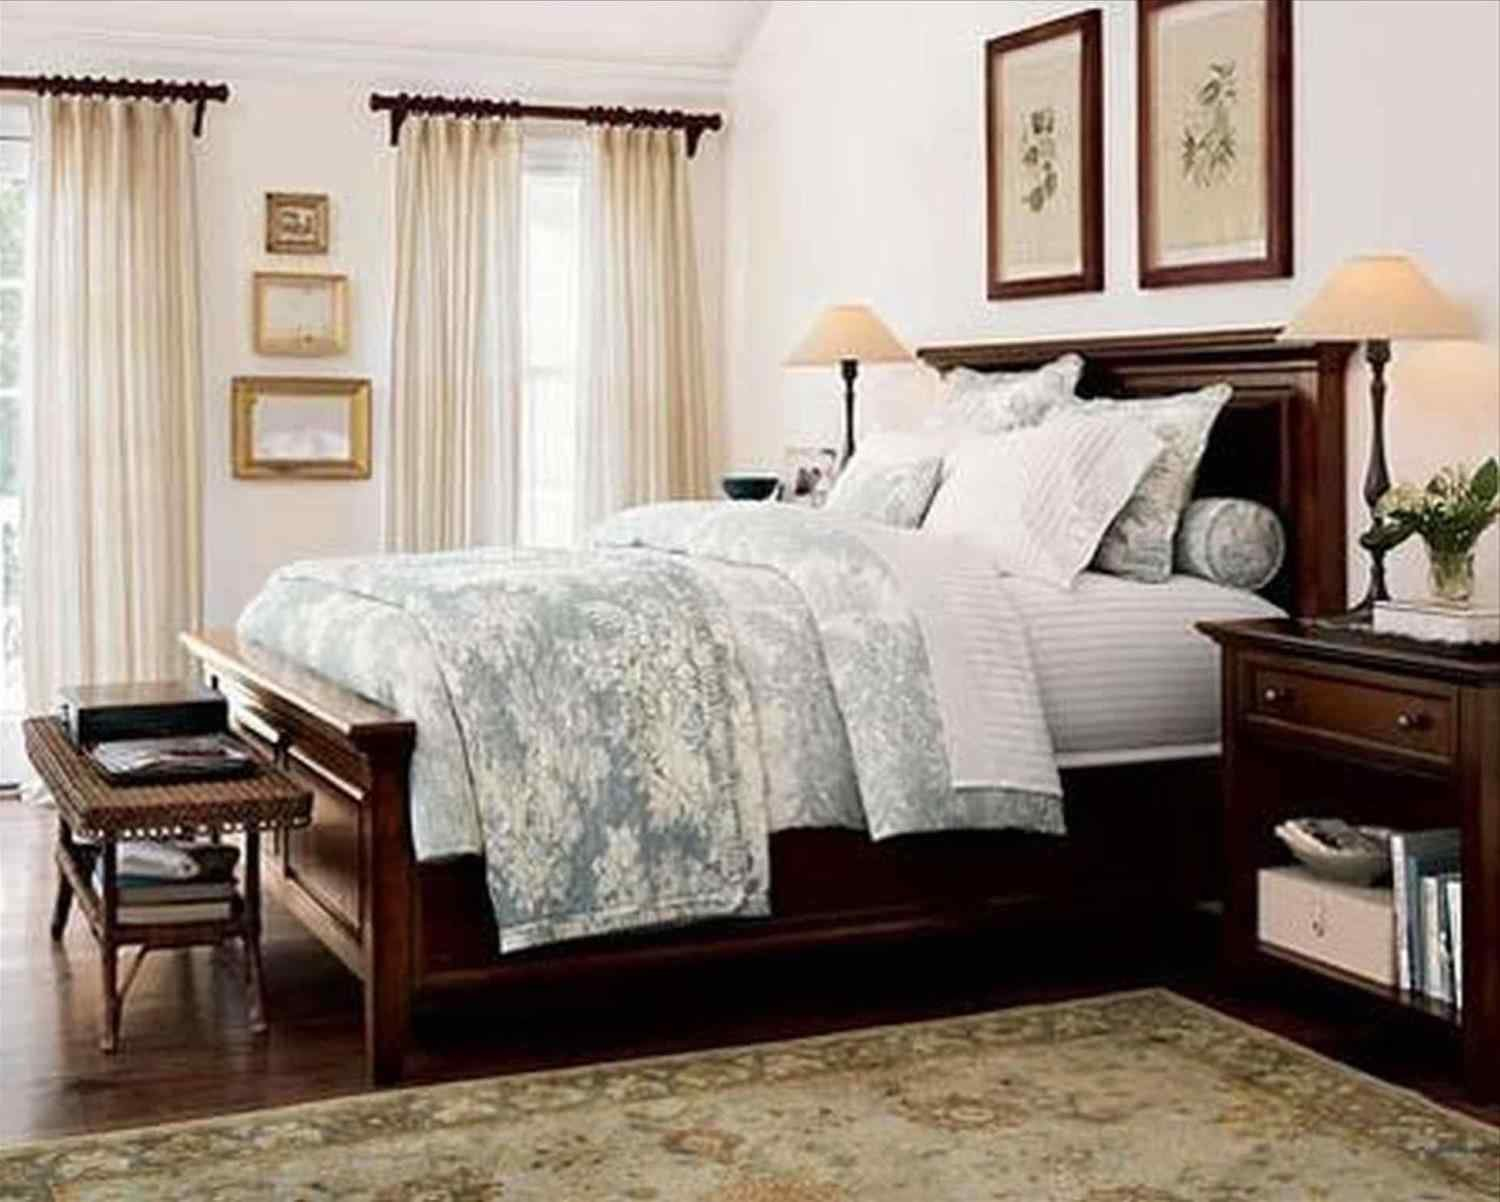 Best 30 Amazing King Size Bed Ideas In Small Bedroom Webnera With Pictures